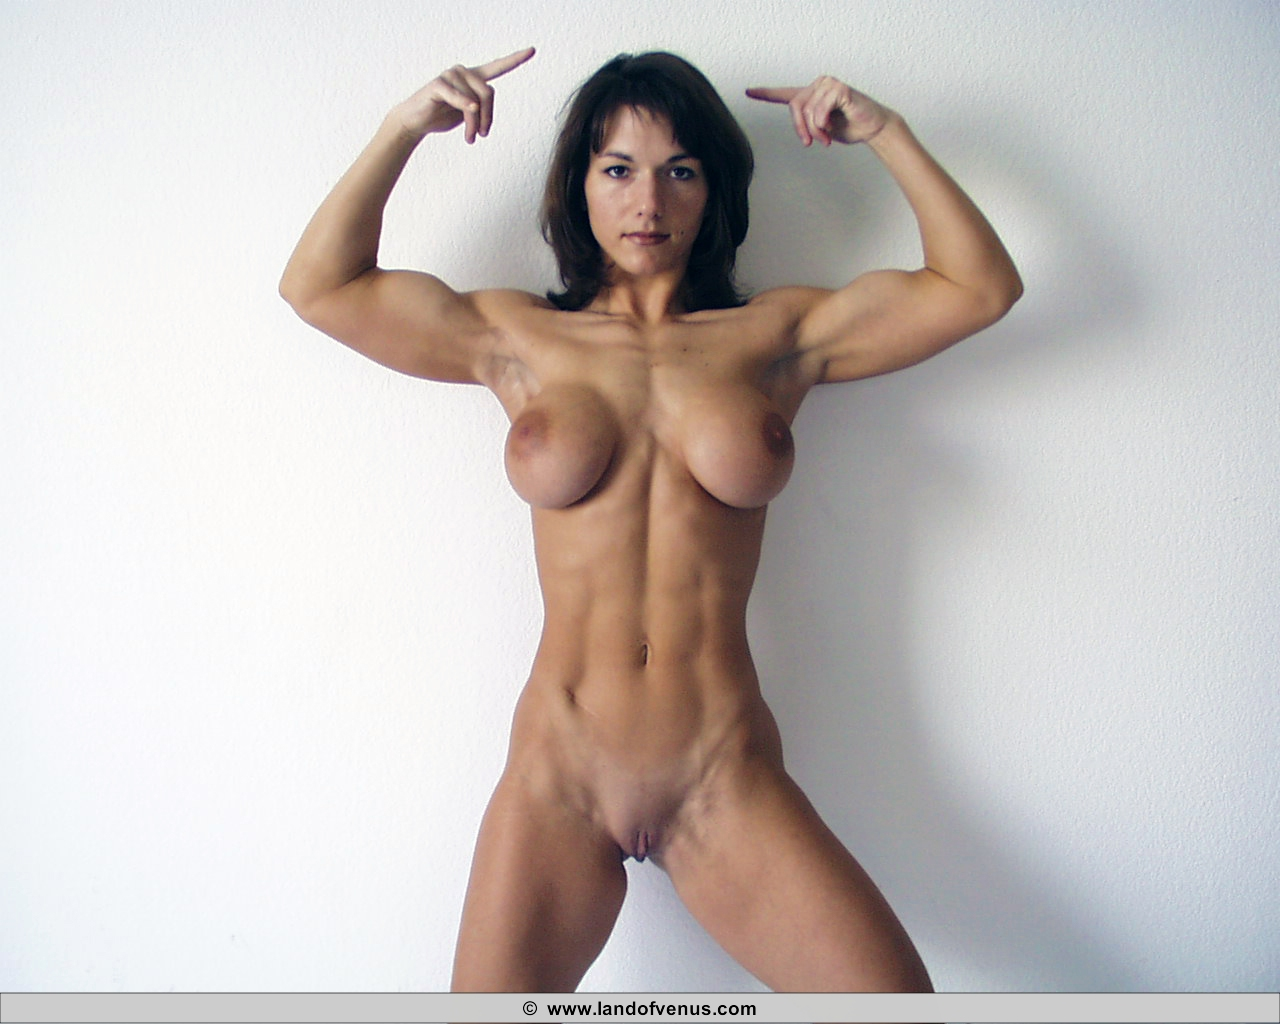 Old women bodybuilding nude